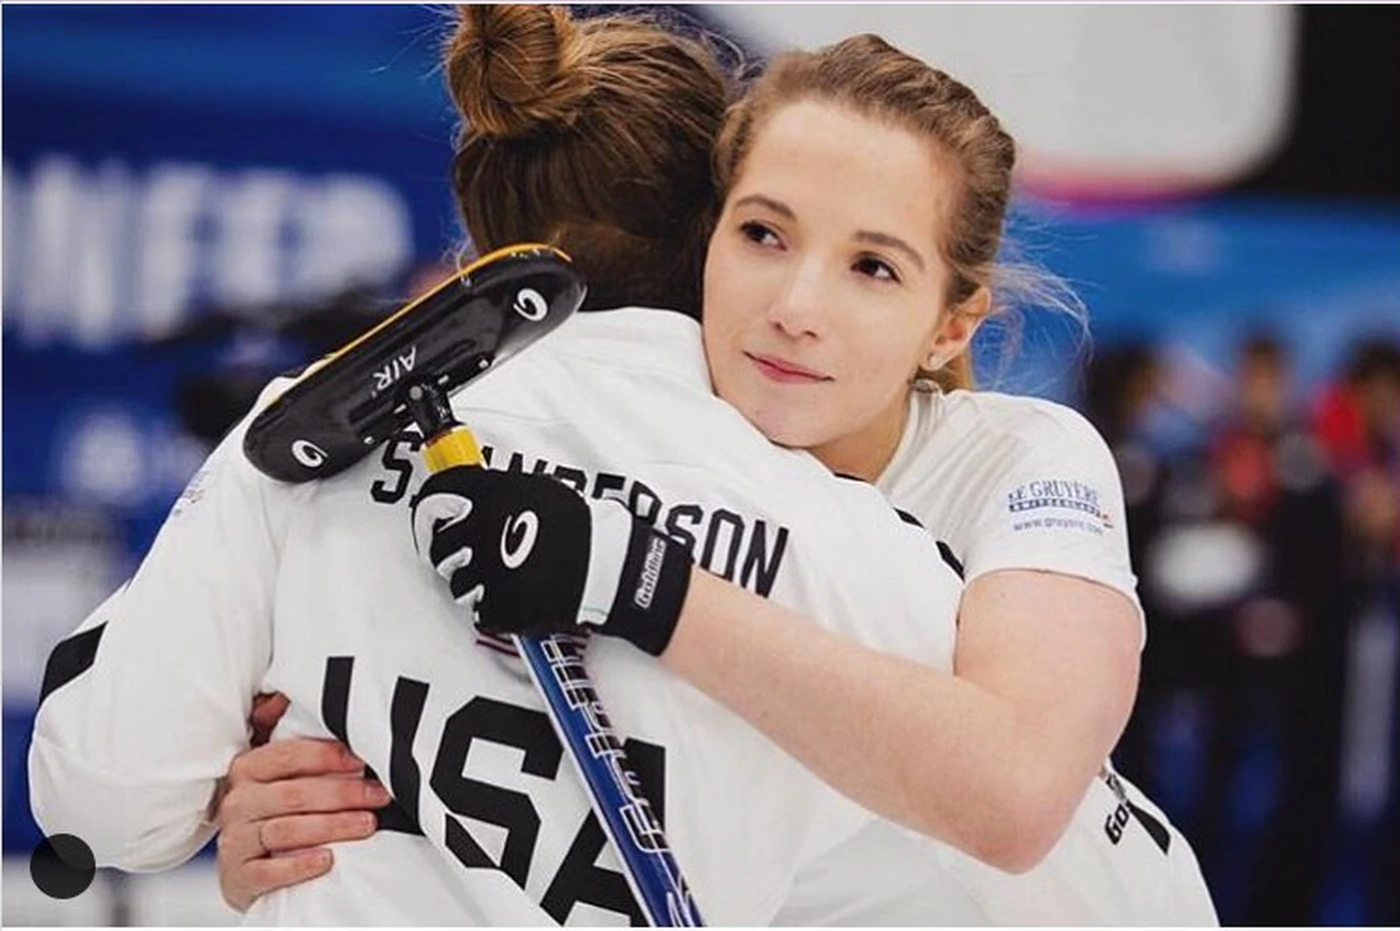 Broomall Twins Were Raised on Curling. Now They're Champions